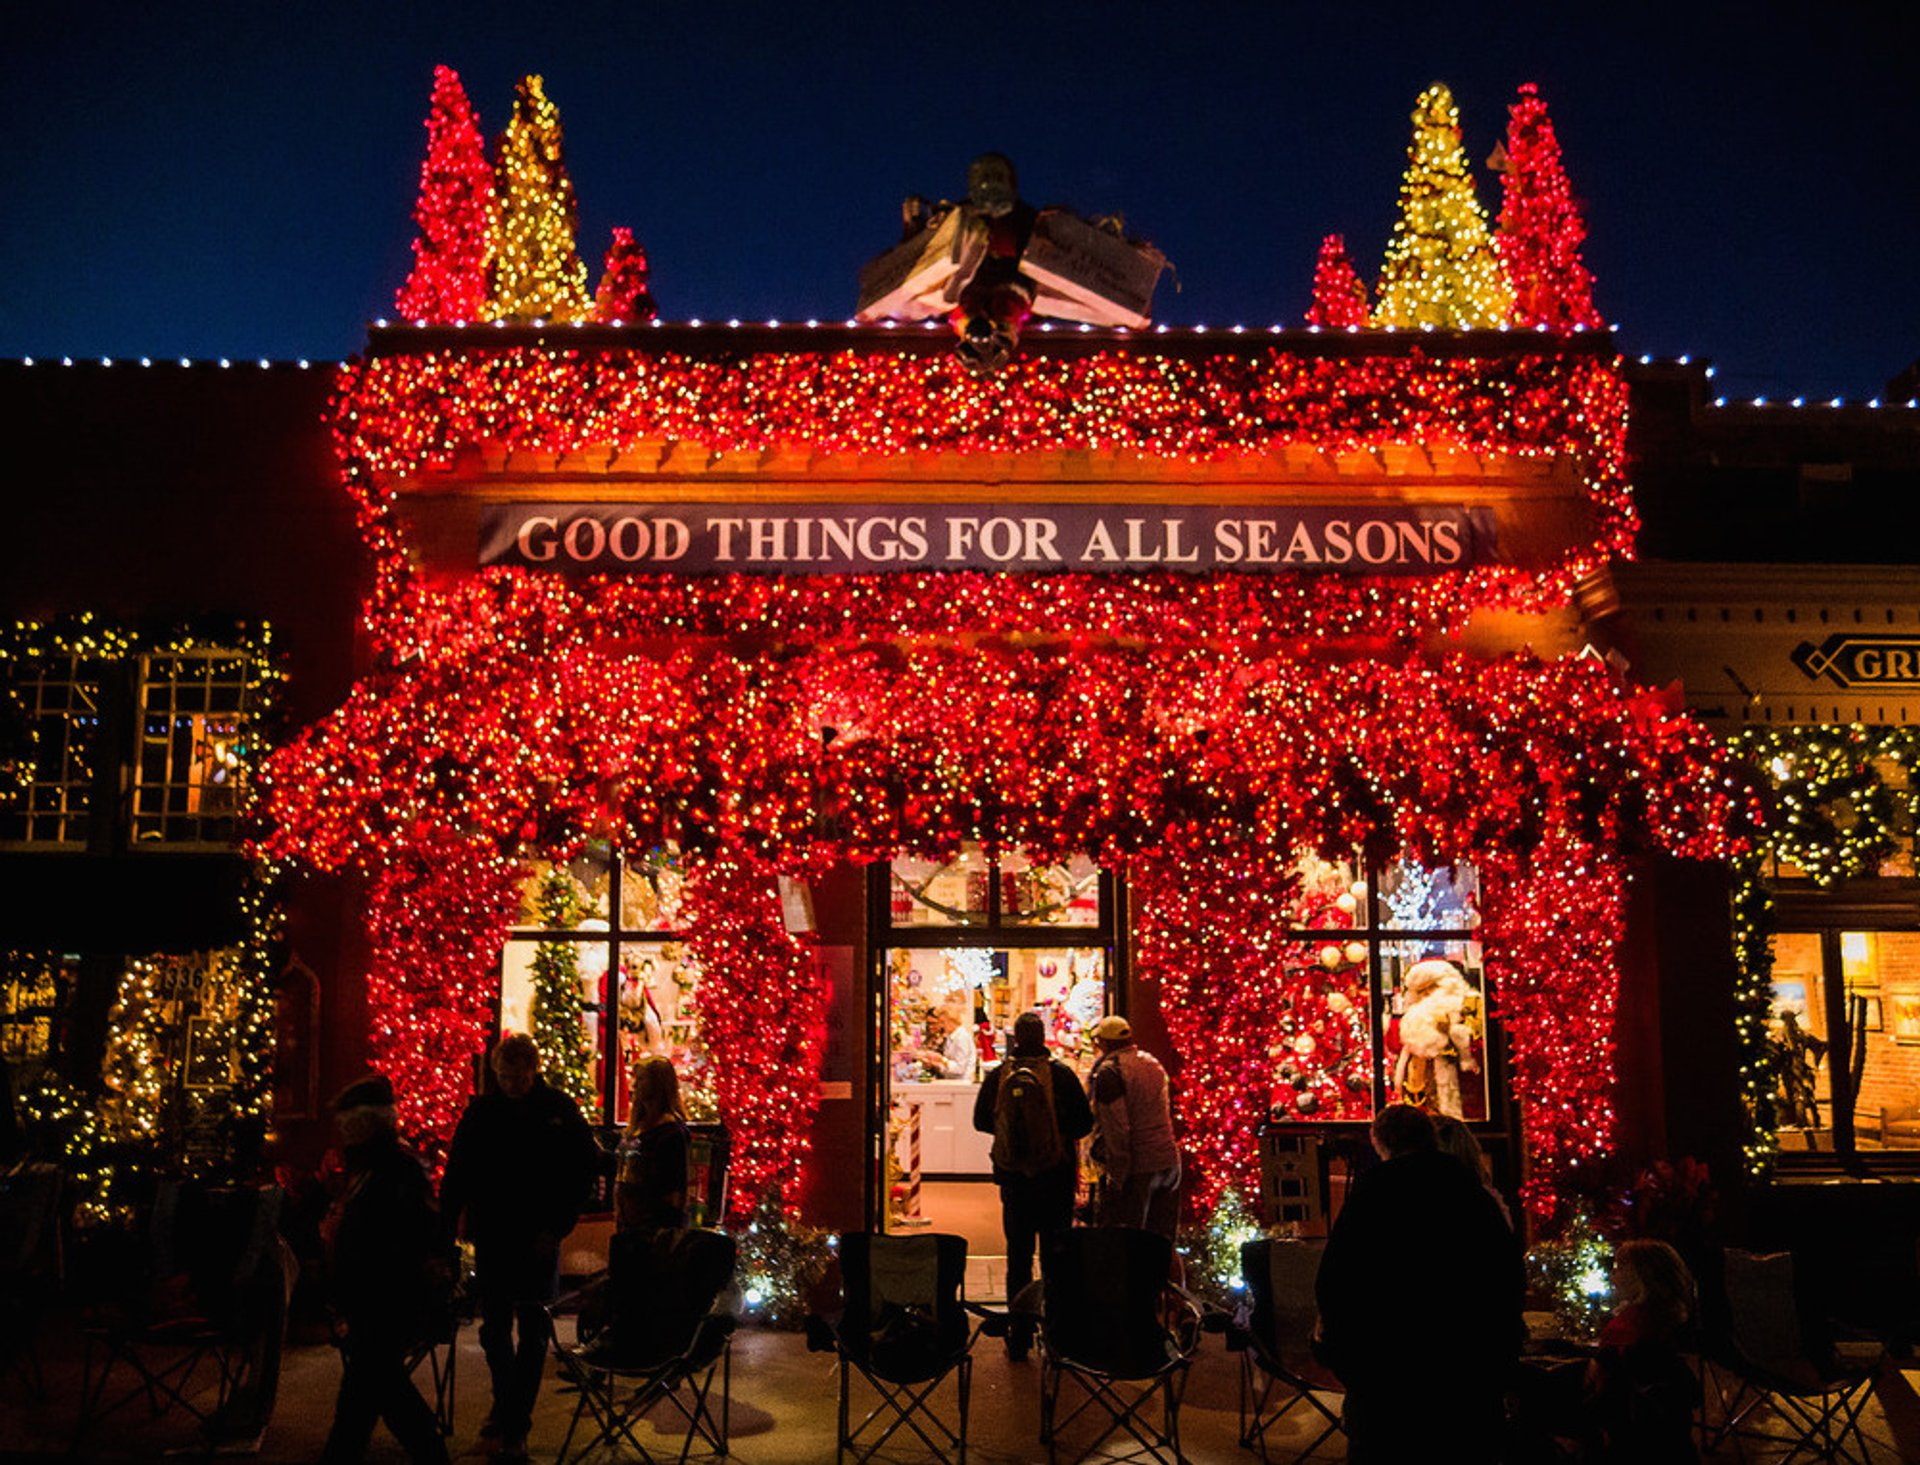 Grapevine Parade of Lights in Texas 2020 - Best Time